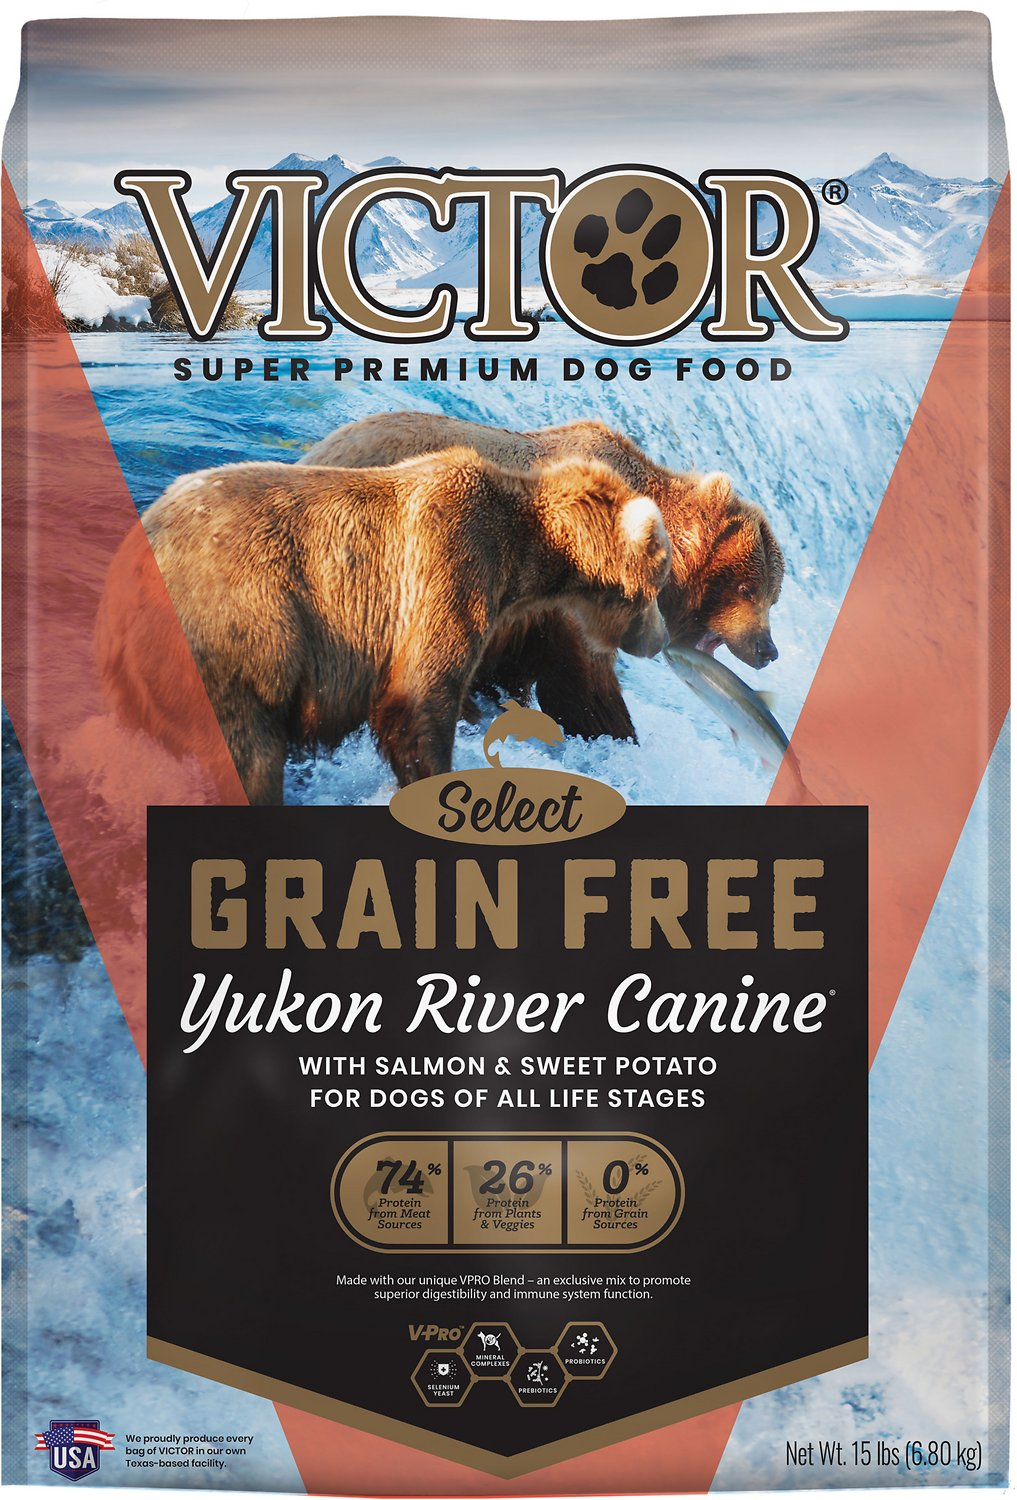 Victor Dog Food Reviews >> Victor Yukon River Salmon & Sweet Potato Grain-Free Dry Dog Food, 15-lb bag - Chewy.com